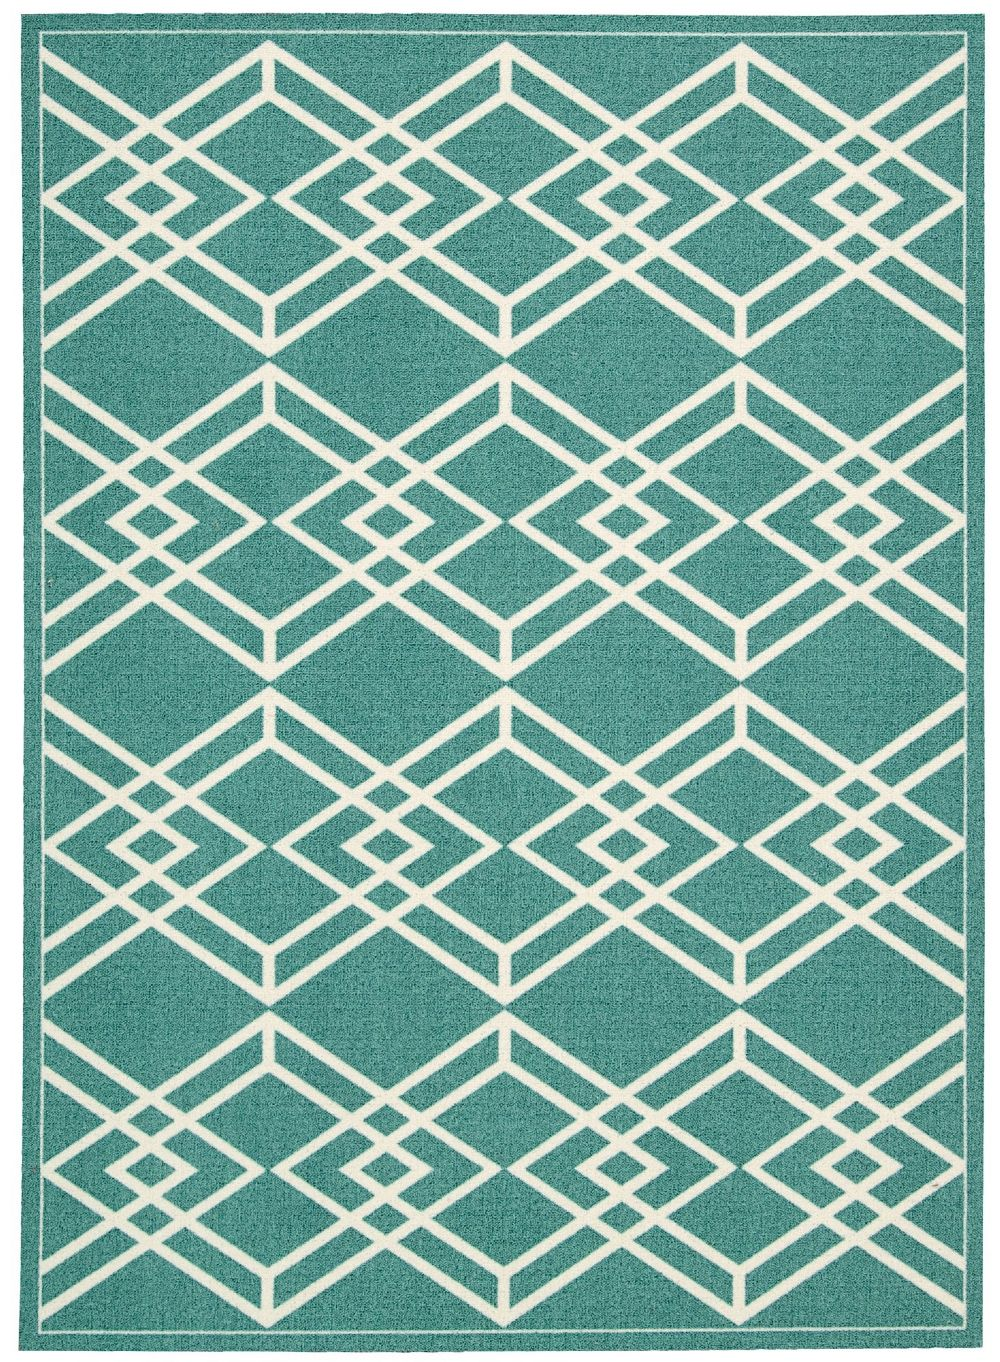 nourison enhance transitional area rug collection